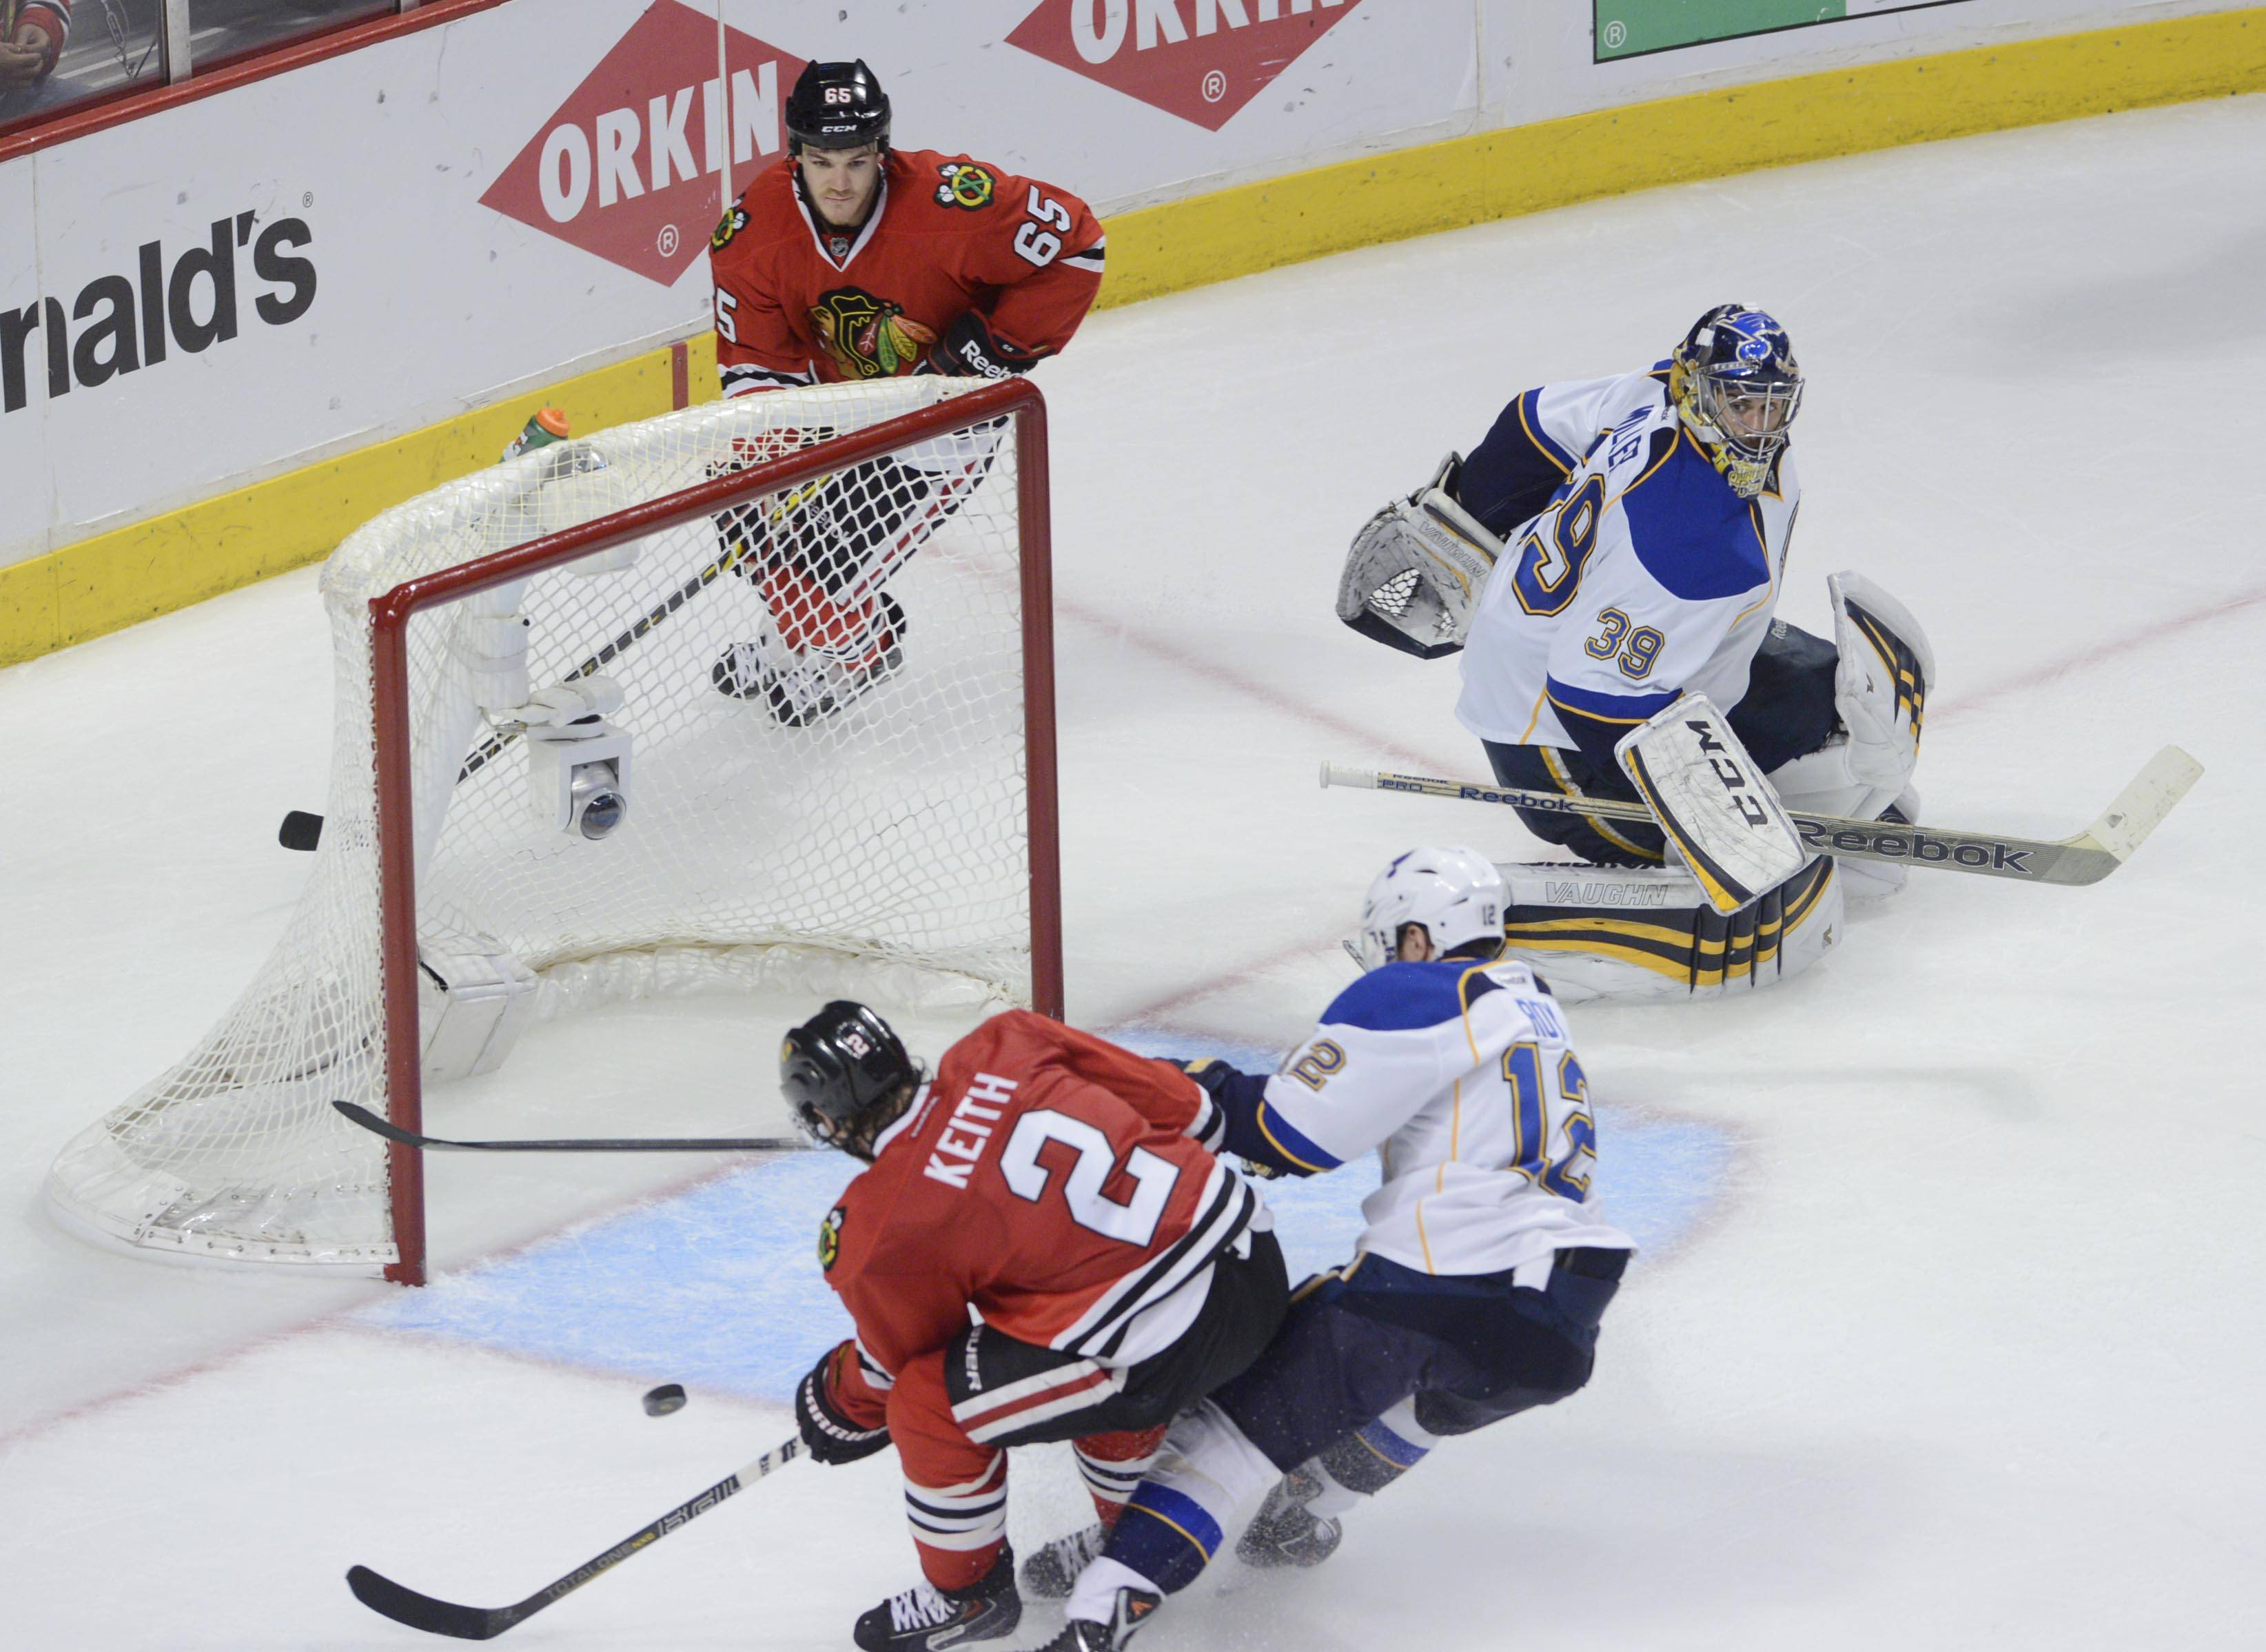 Duncan Keith, here scoring against the St. Louis Blues on Sunday in Game 6 of the NHL playoffs, was named a finalist Monday for the Norris Trophy, which is given to the defenseman with the best all-around game.